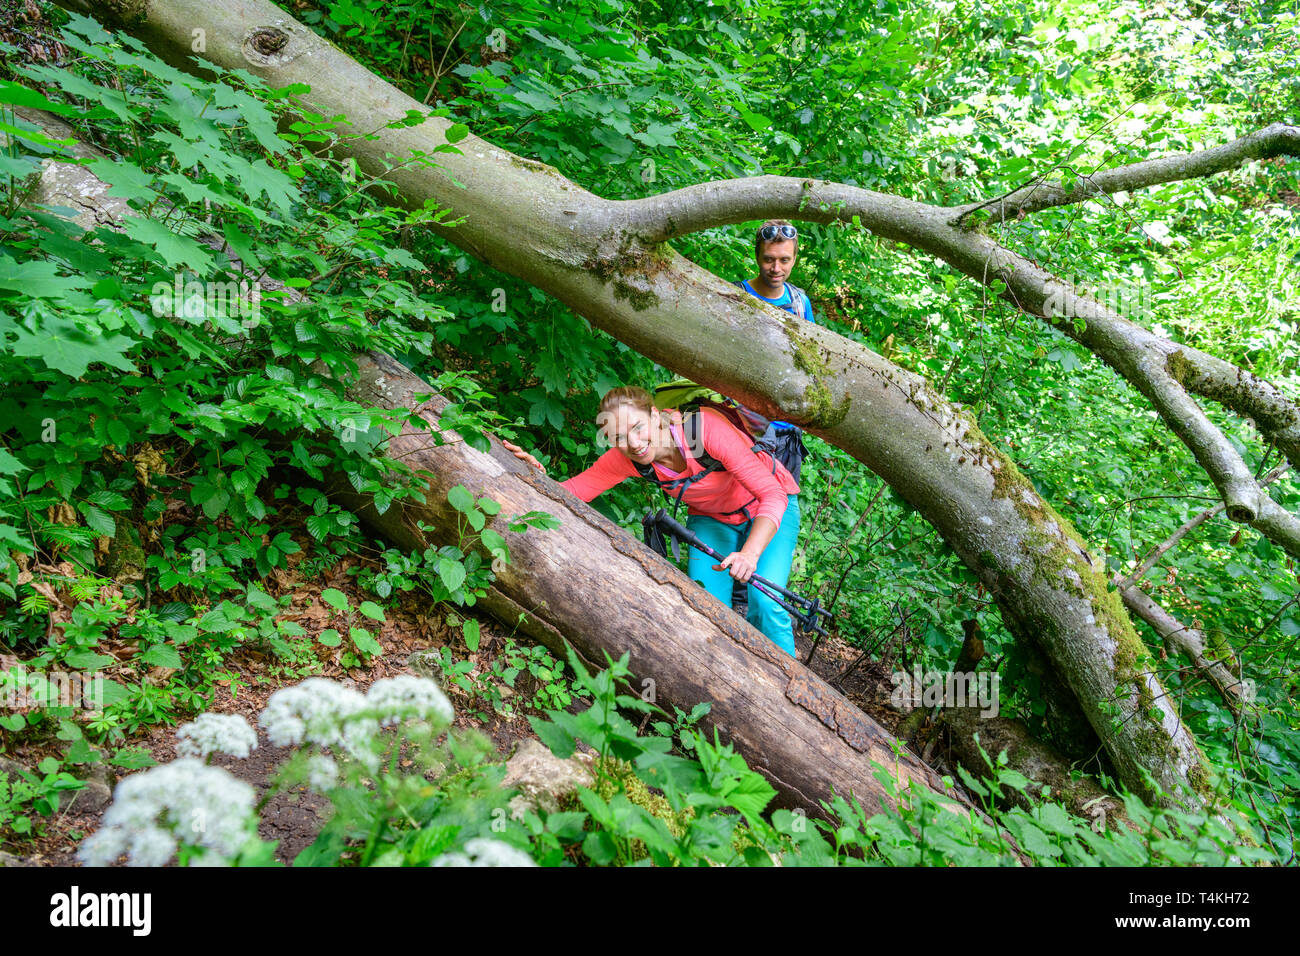 Adventural tour on challenging trail in forest - Stock Image